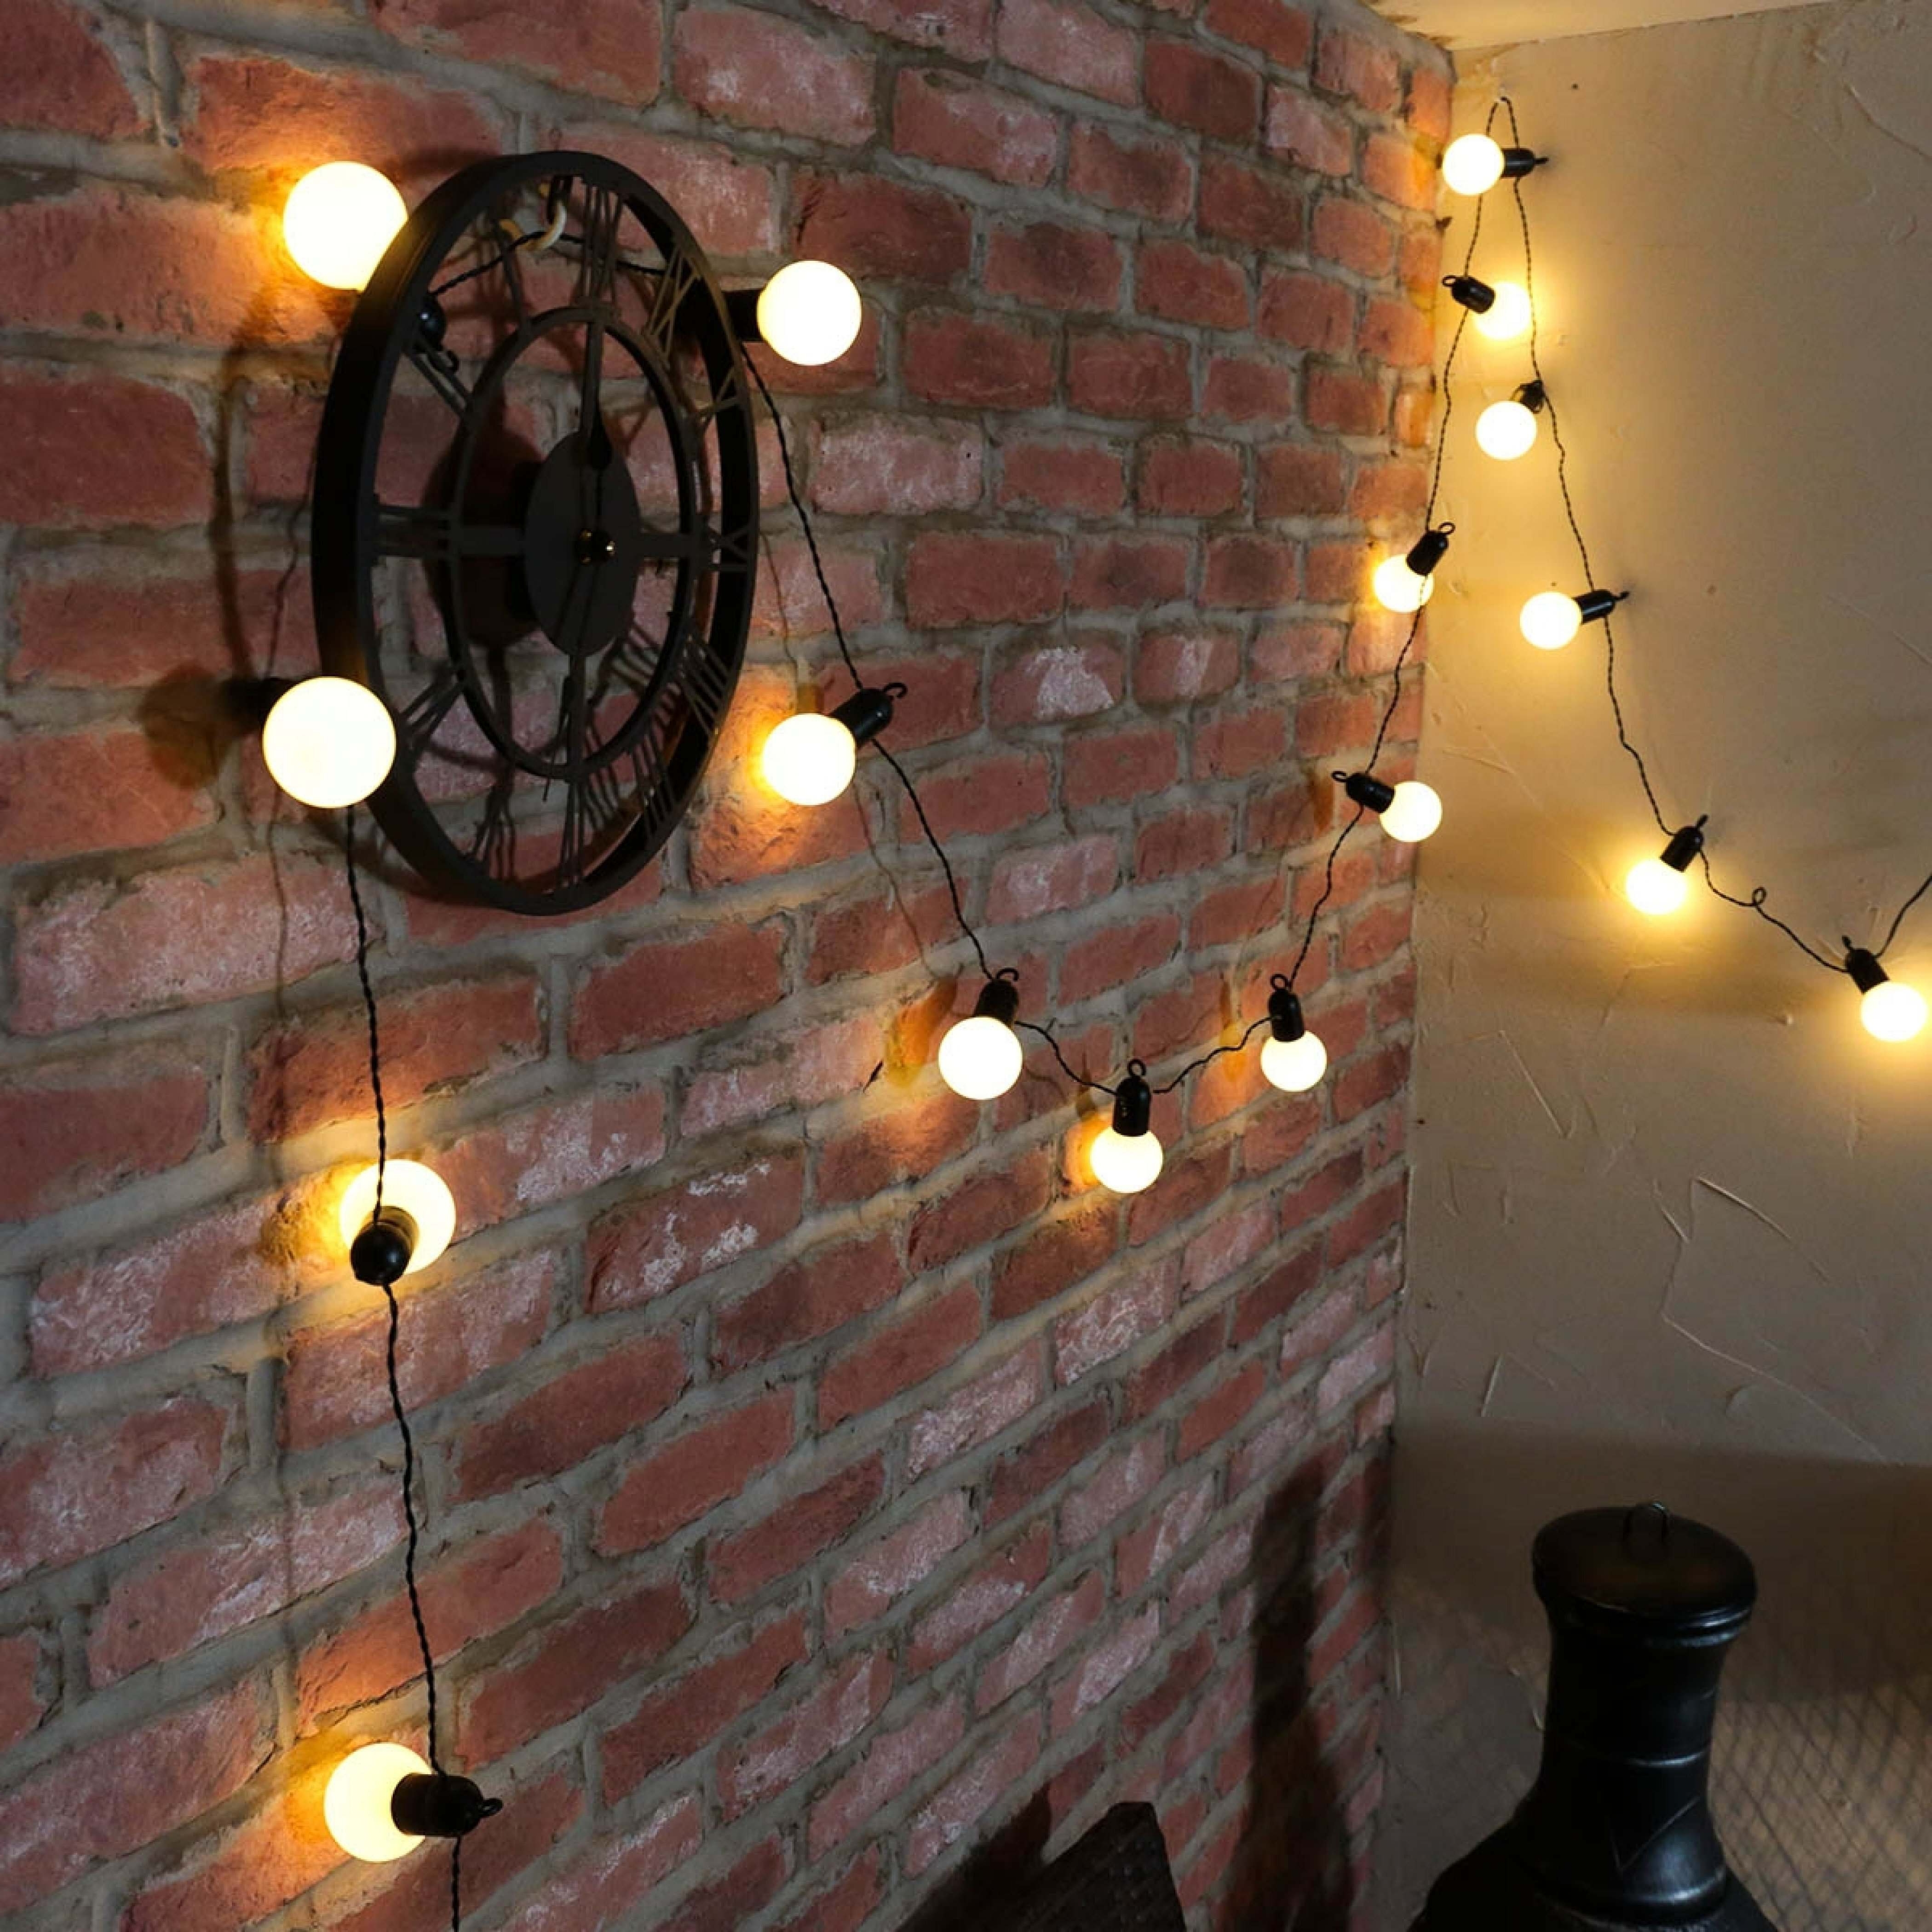 Outdoor Plug In Festoon Lights, 20 Leds, Dark Green Cable,  (View 9 of 20)